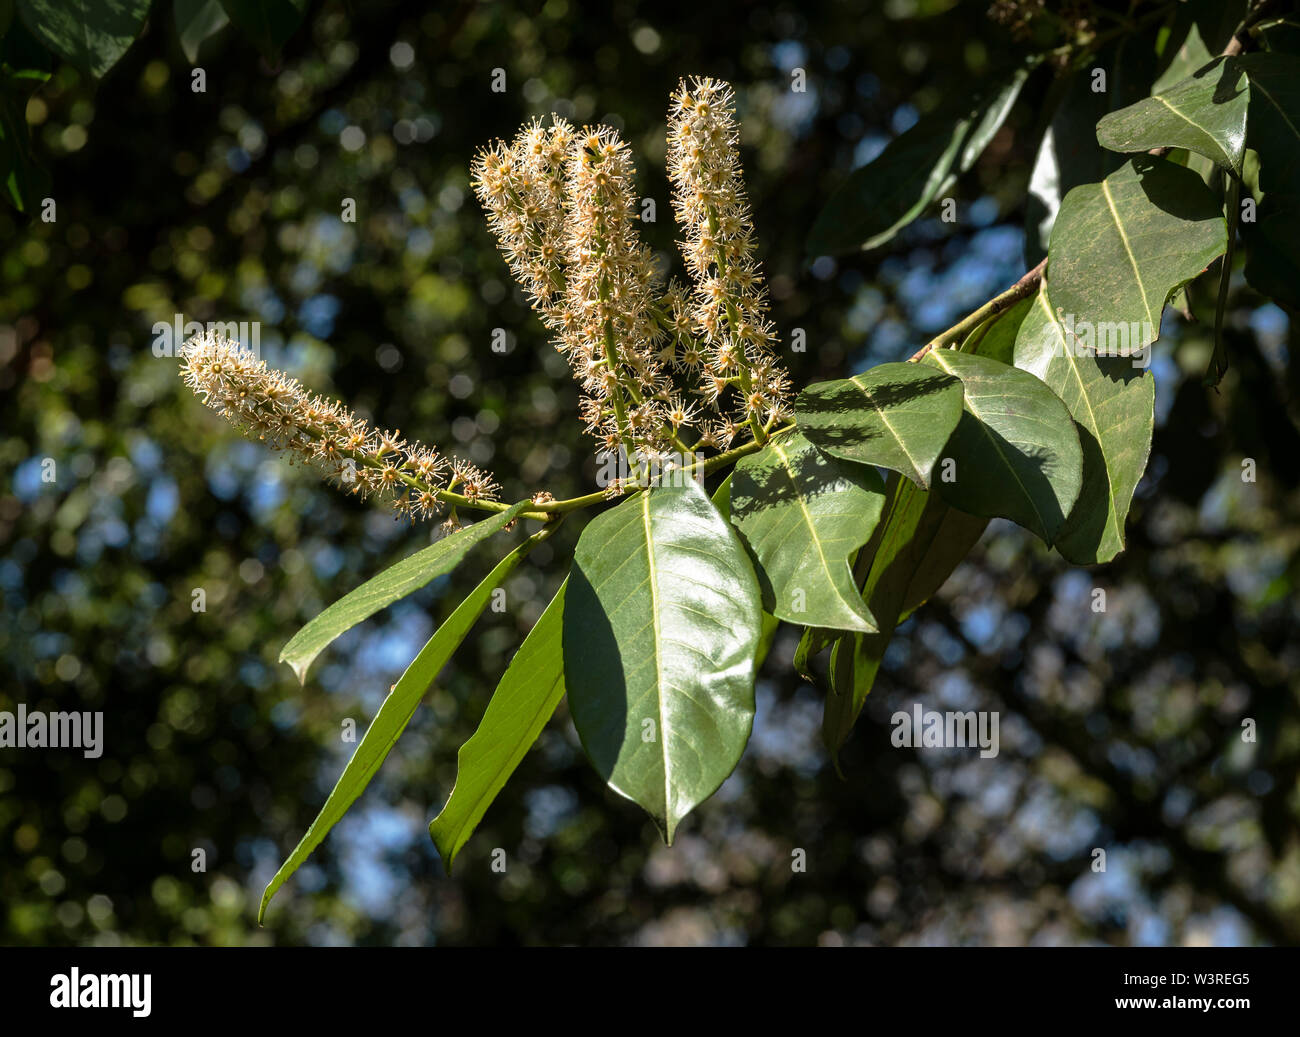 English Laurel or Cherry Laurel is a shrub / tree ( Prunus laurocerasus ) , shown in bloom. Poisonous plant if eaten, poss. fatal respiratory issues. - Stock Image